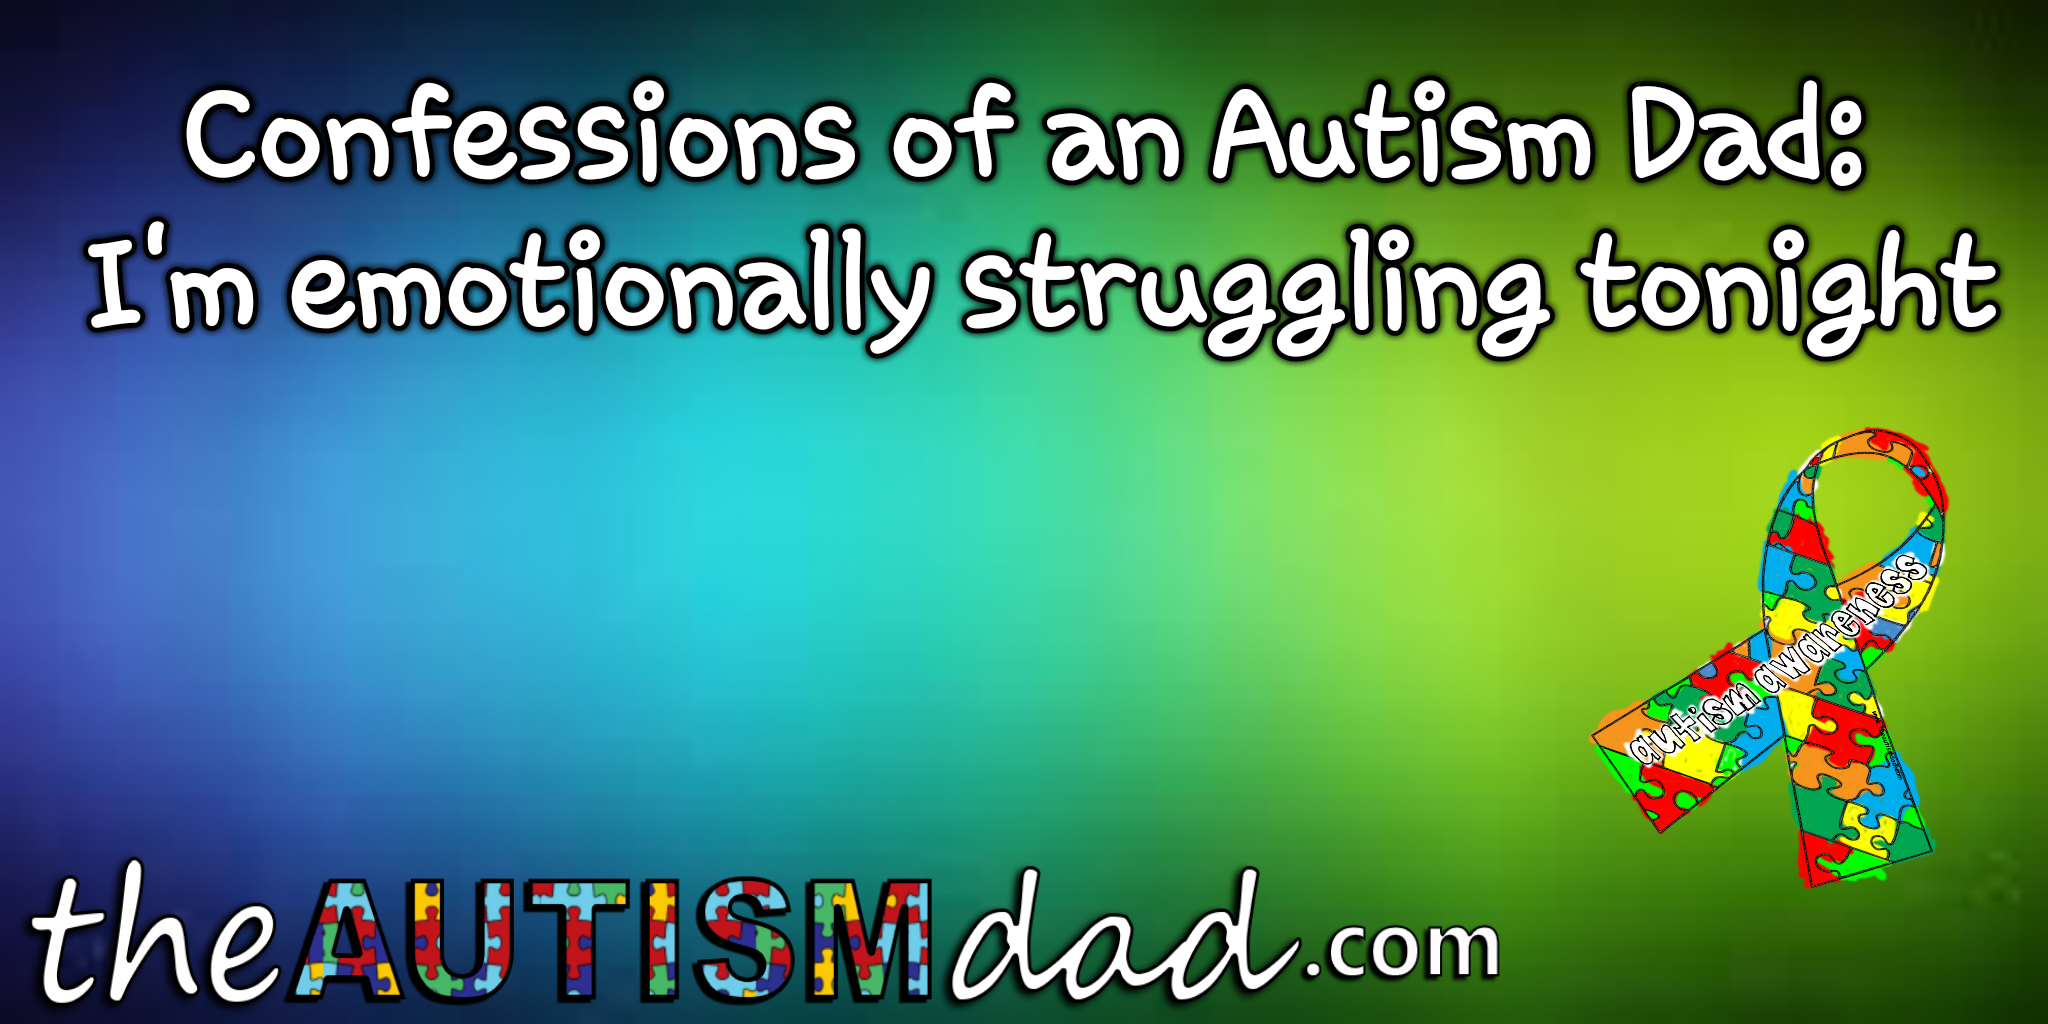 Confessions of an #Autism Dad: I'm emotionally struggling tonight